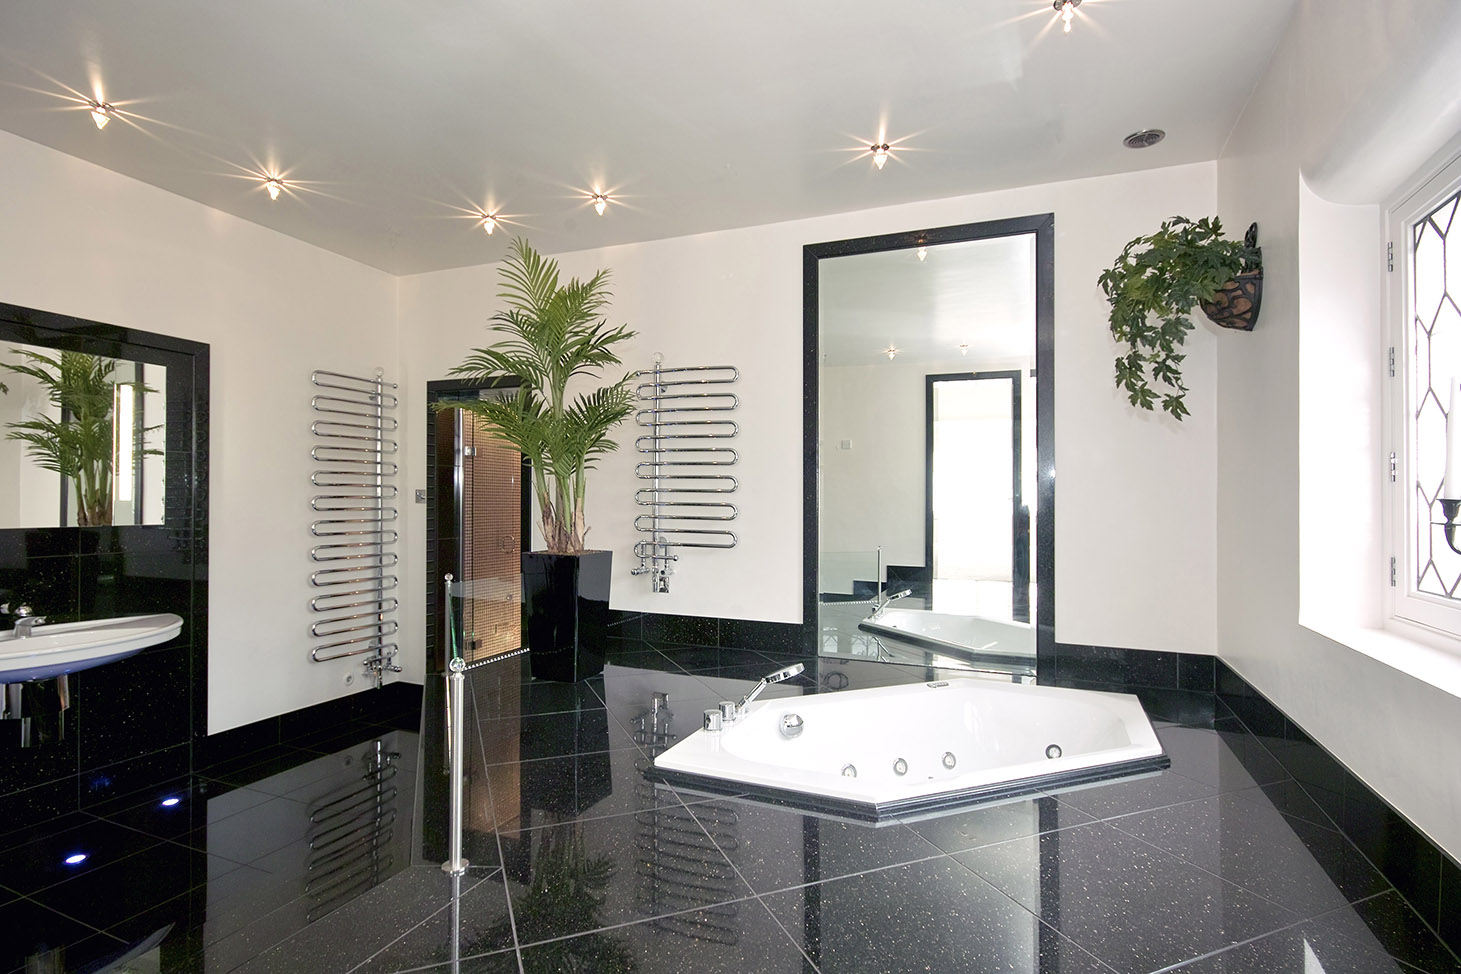 Black Tiled Bathroom Black Tiled Bathroom With Sunken Bath Kitchen And